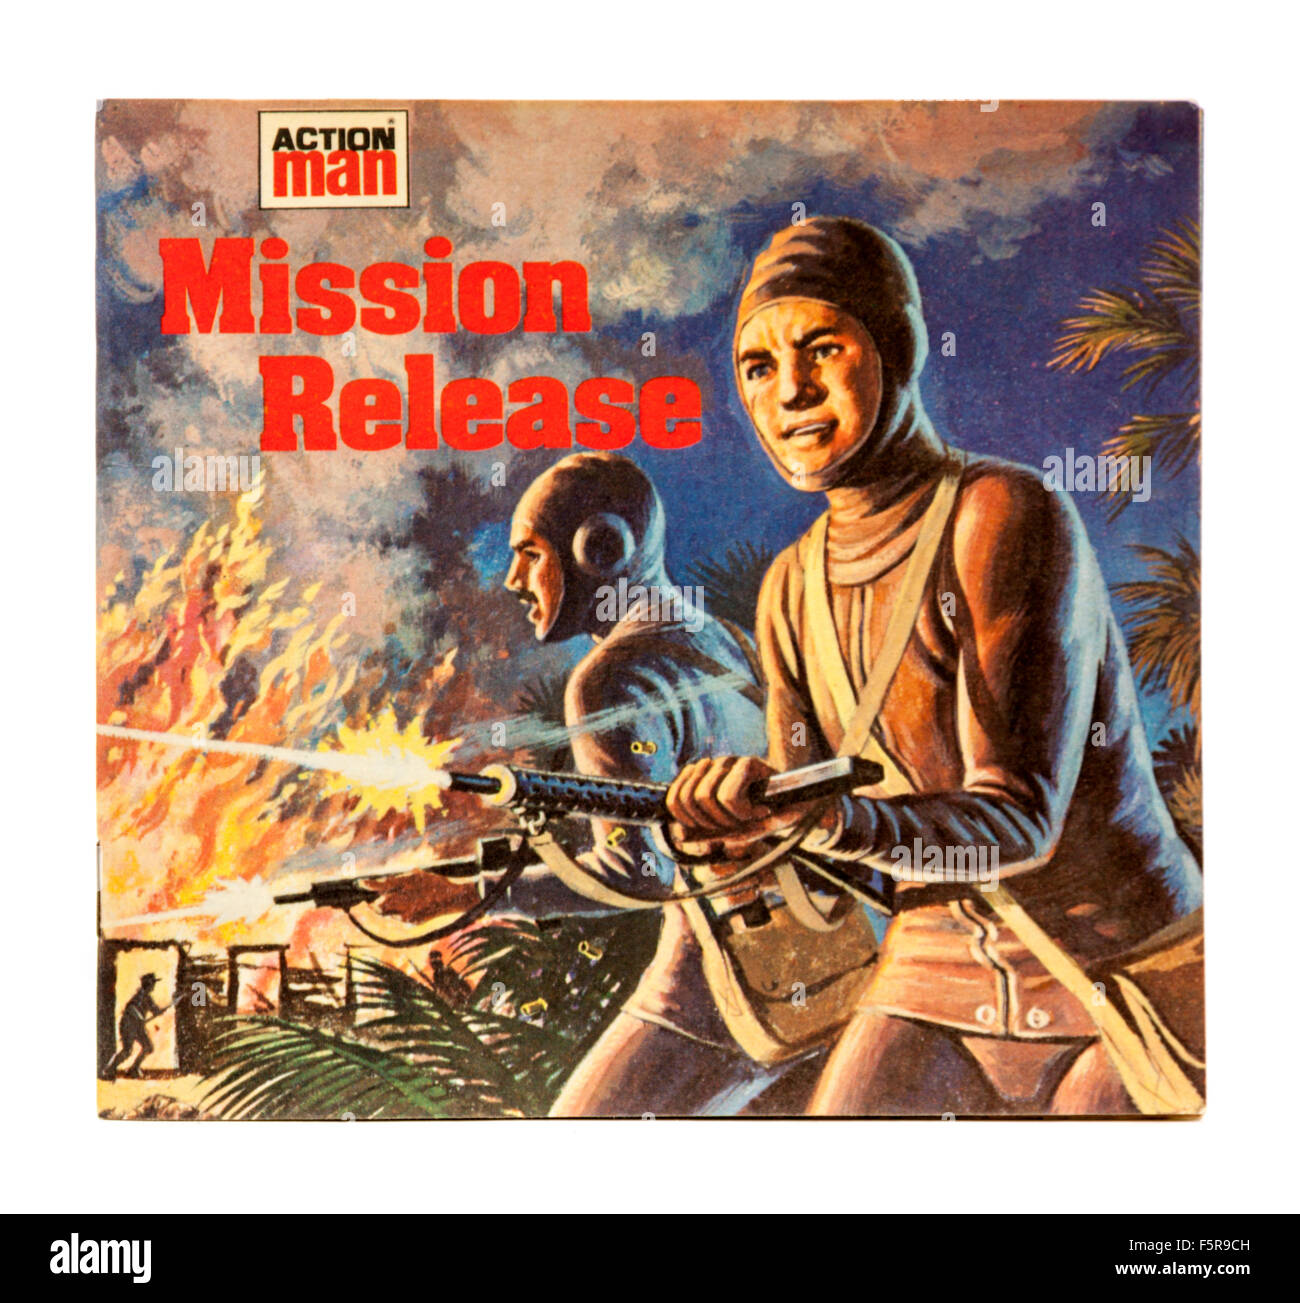 Vintage Action Man 'Mission Release' Mini-Story Book (1978), published by Aidan Ellis Publishing Ltd. - Stock Image